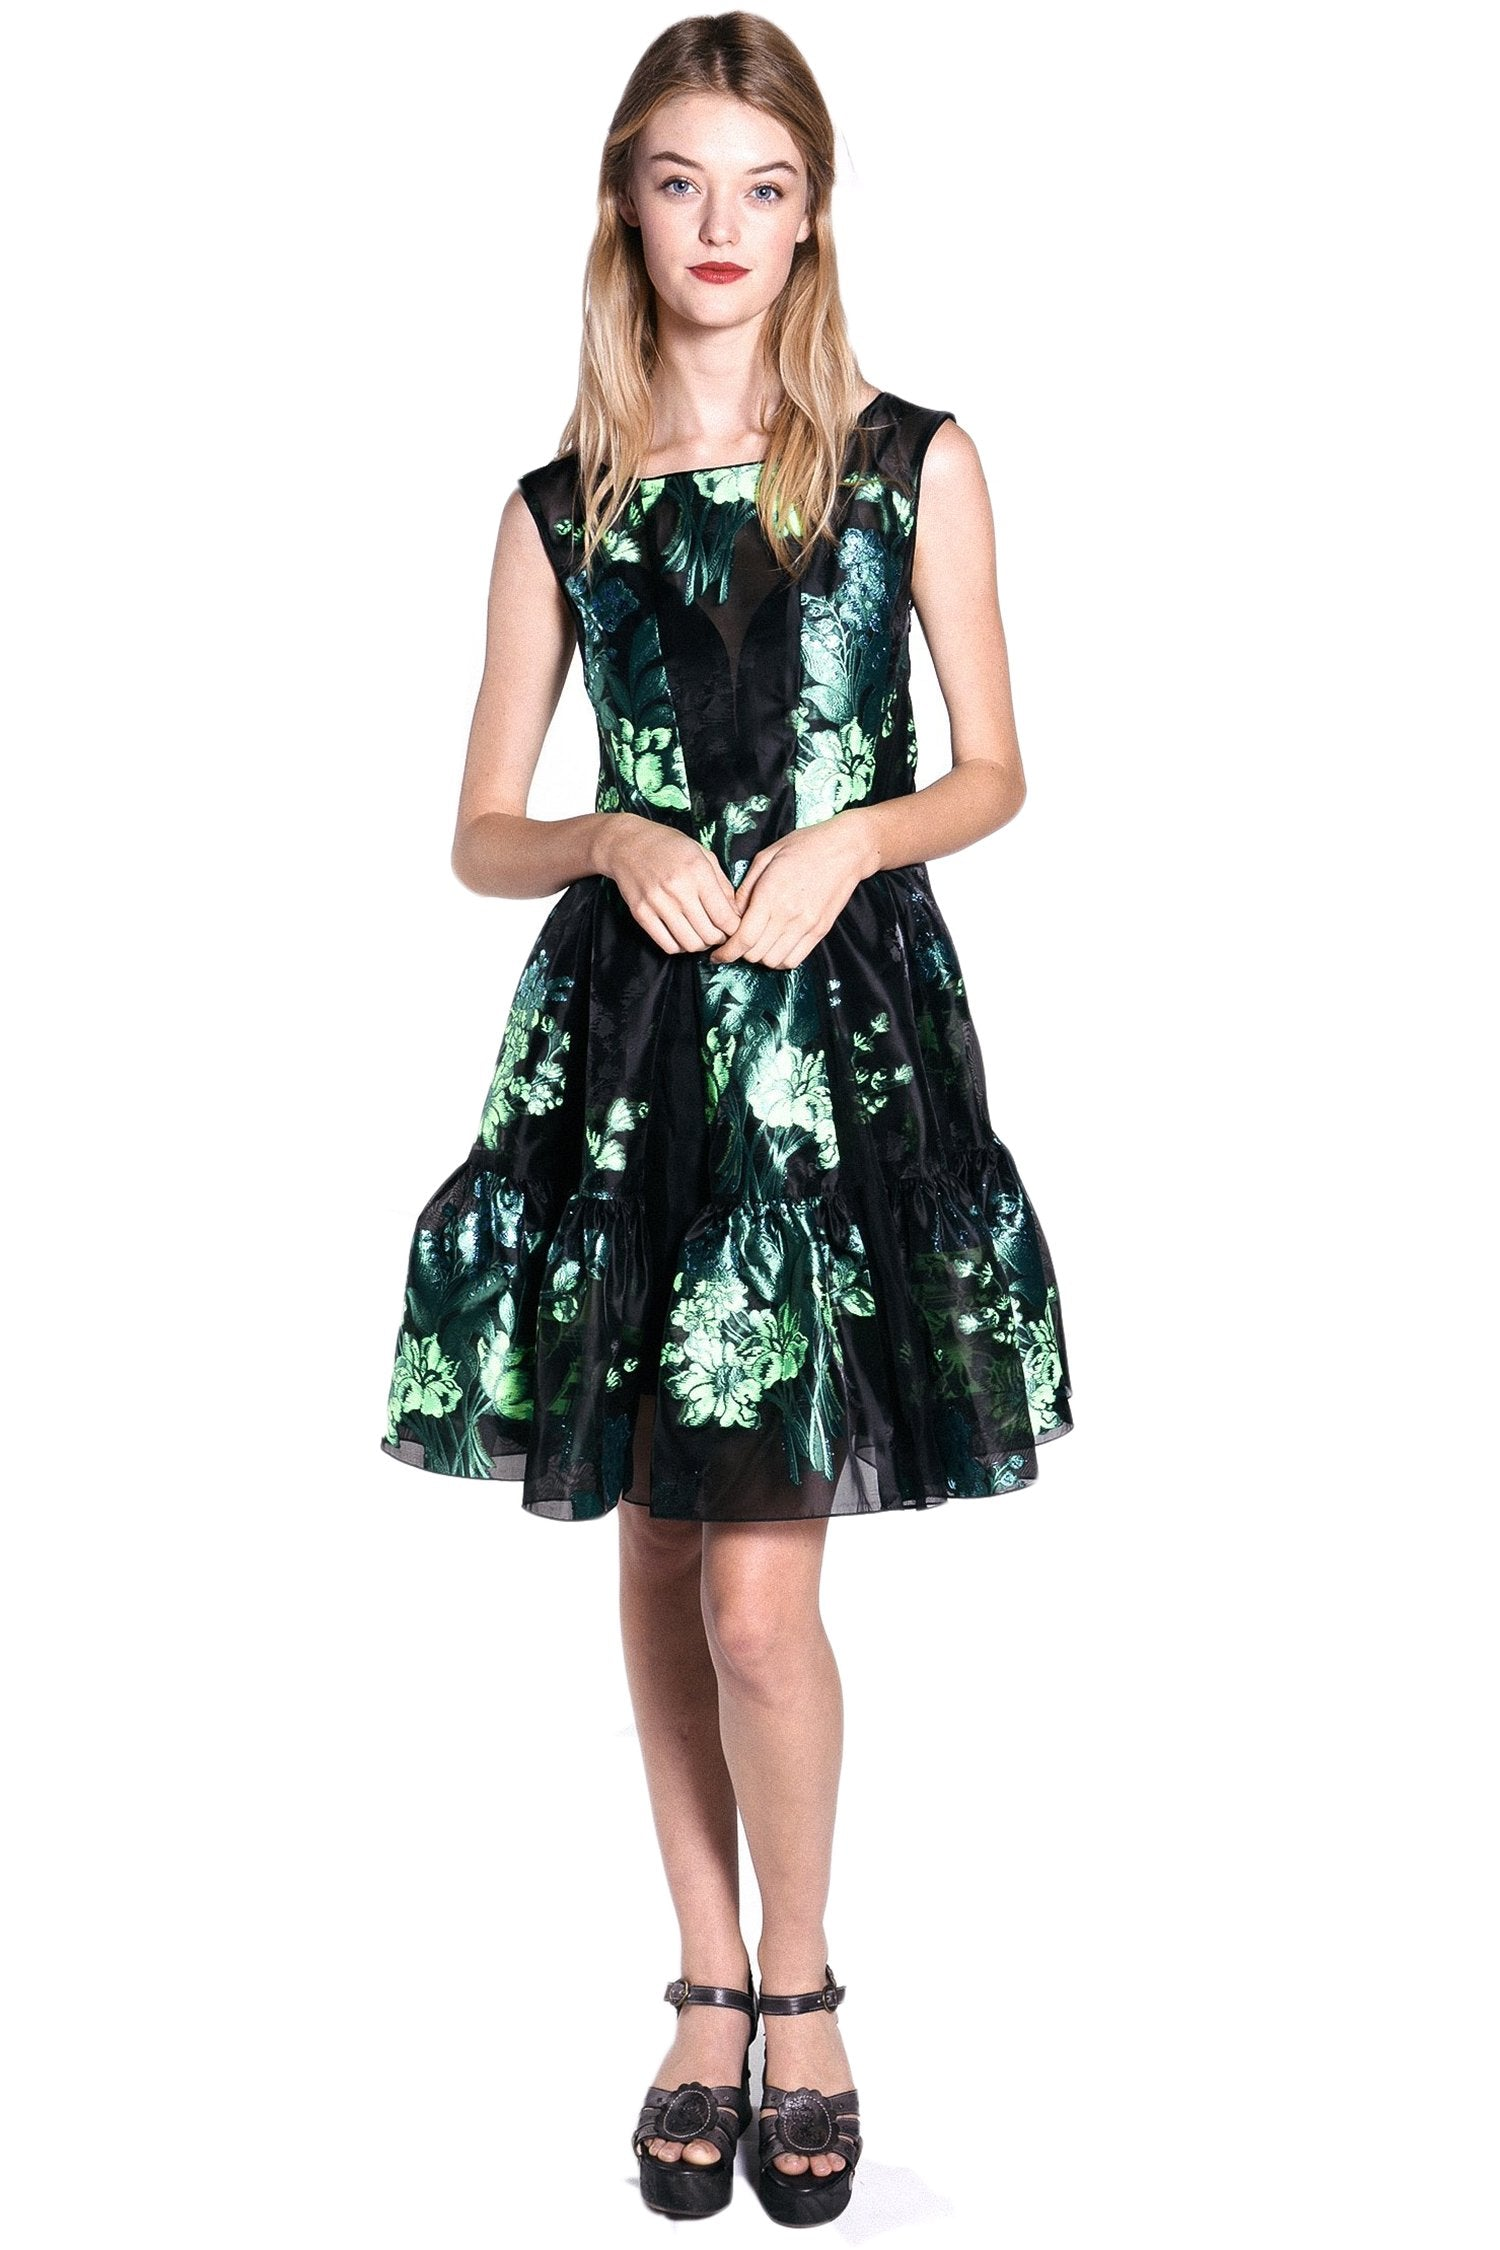 Kismet Clipped Jacquard Sleeveless Dress - Anna Sui